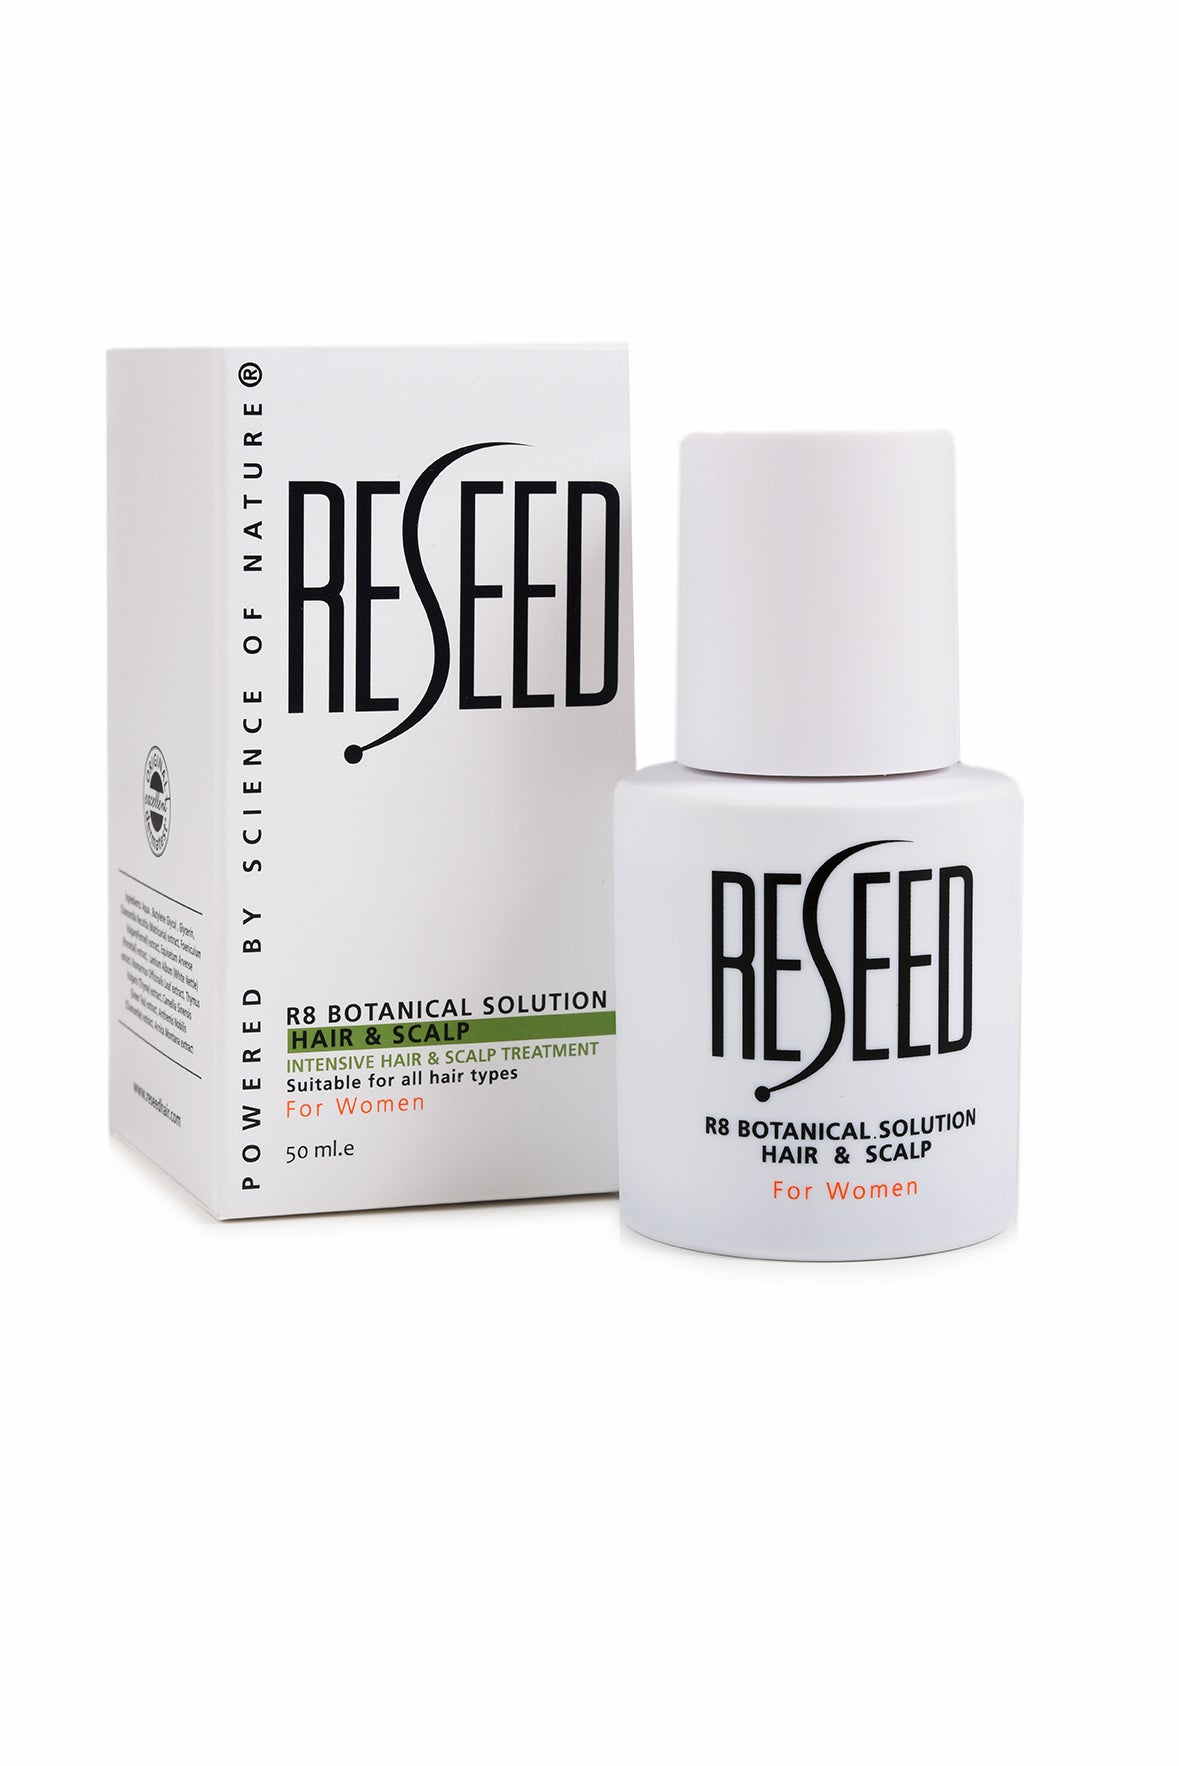 RESEED R8 Botanical Solution for Women 50 ml - Reseed Hair Loss Range for Men and Women